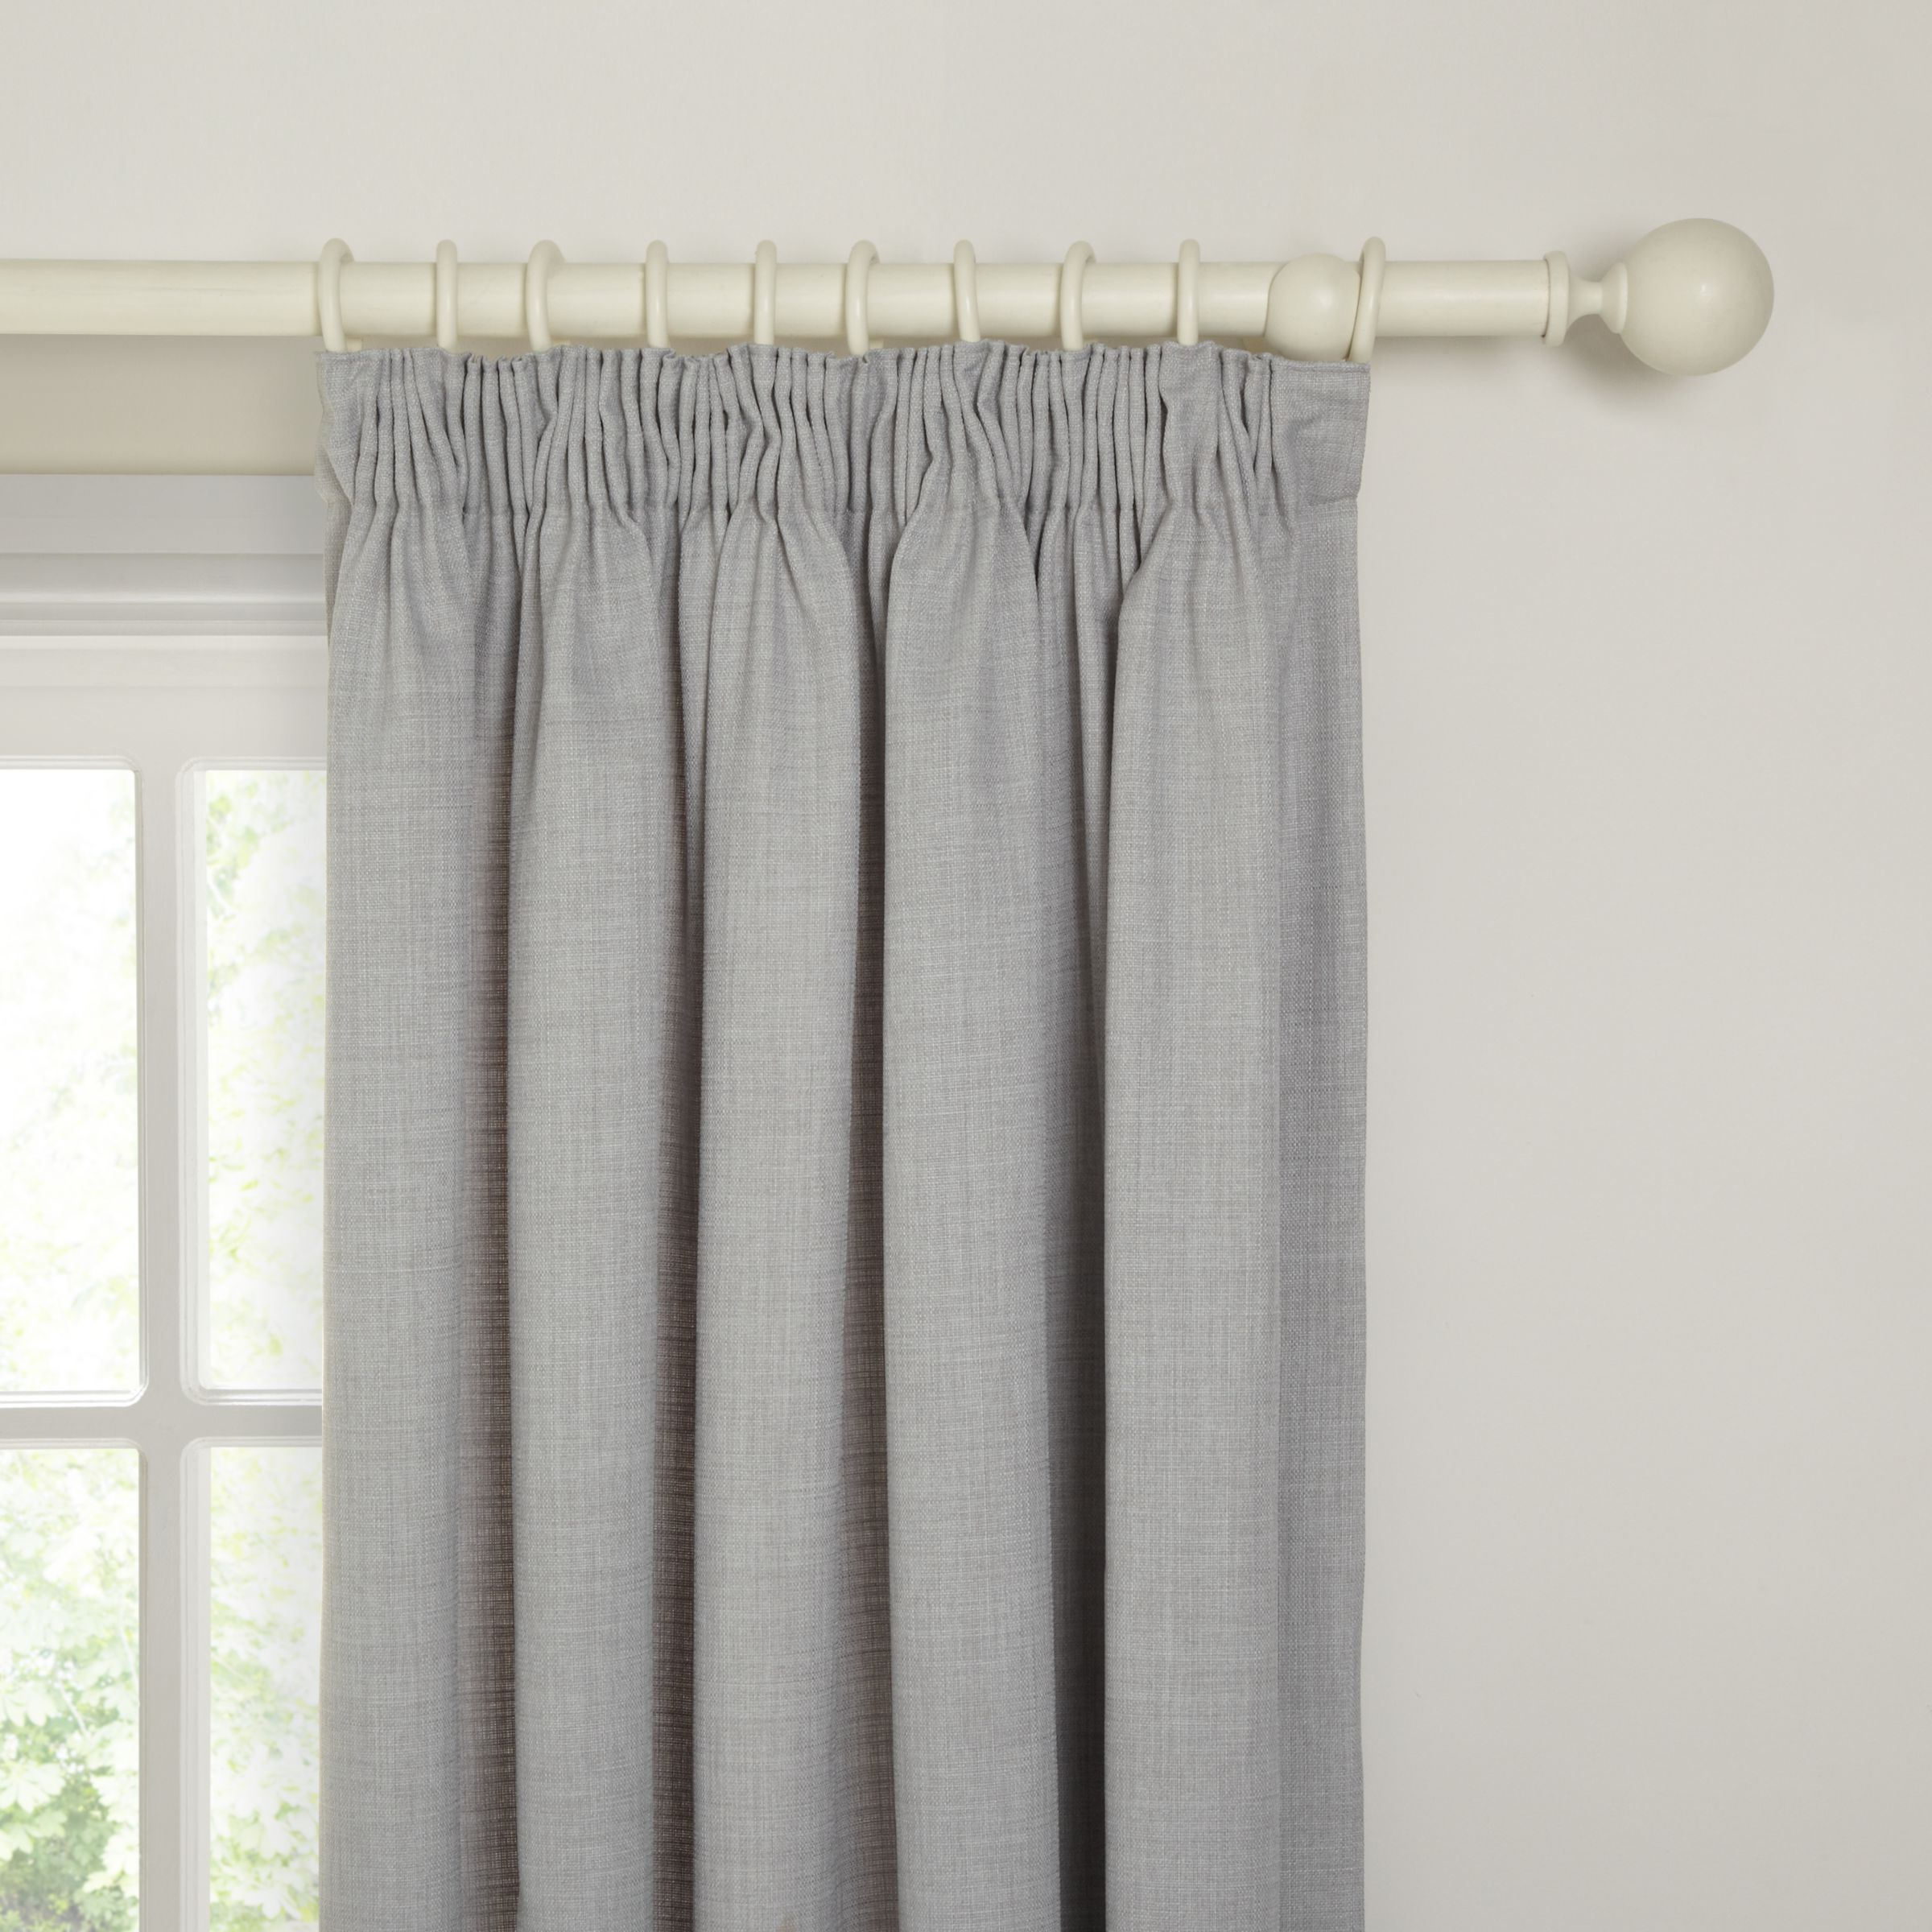 John Lewis & Partners Barathea Pair Blackout Lined Pencil In Well Known The Gray Barn Kind Koala Curtain Panel Pairs (View 17 of 20)